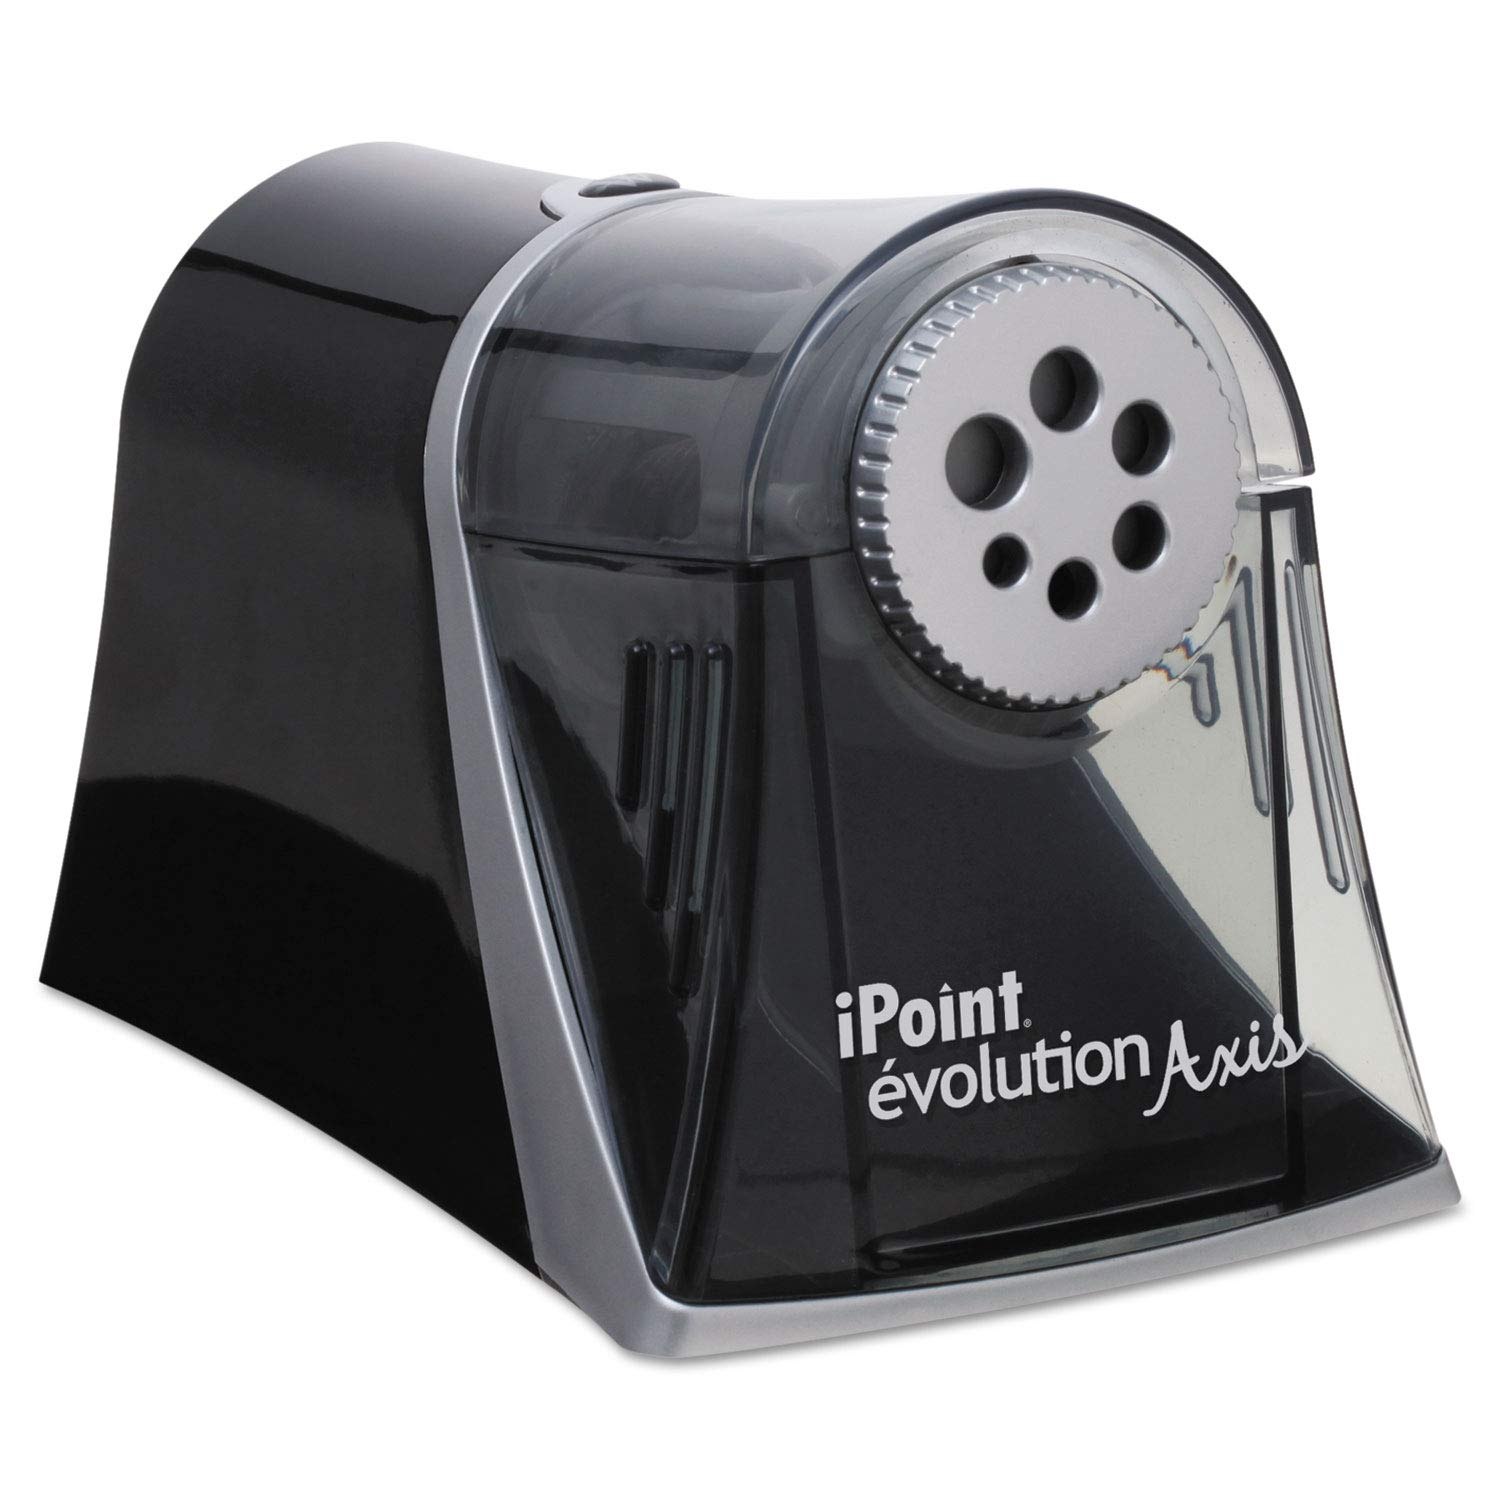 iPoint Evolution Axis Pencil Sharpener, Black/Silver, 5w x 7 1/2 d x 7 1/4h - 15509